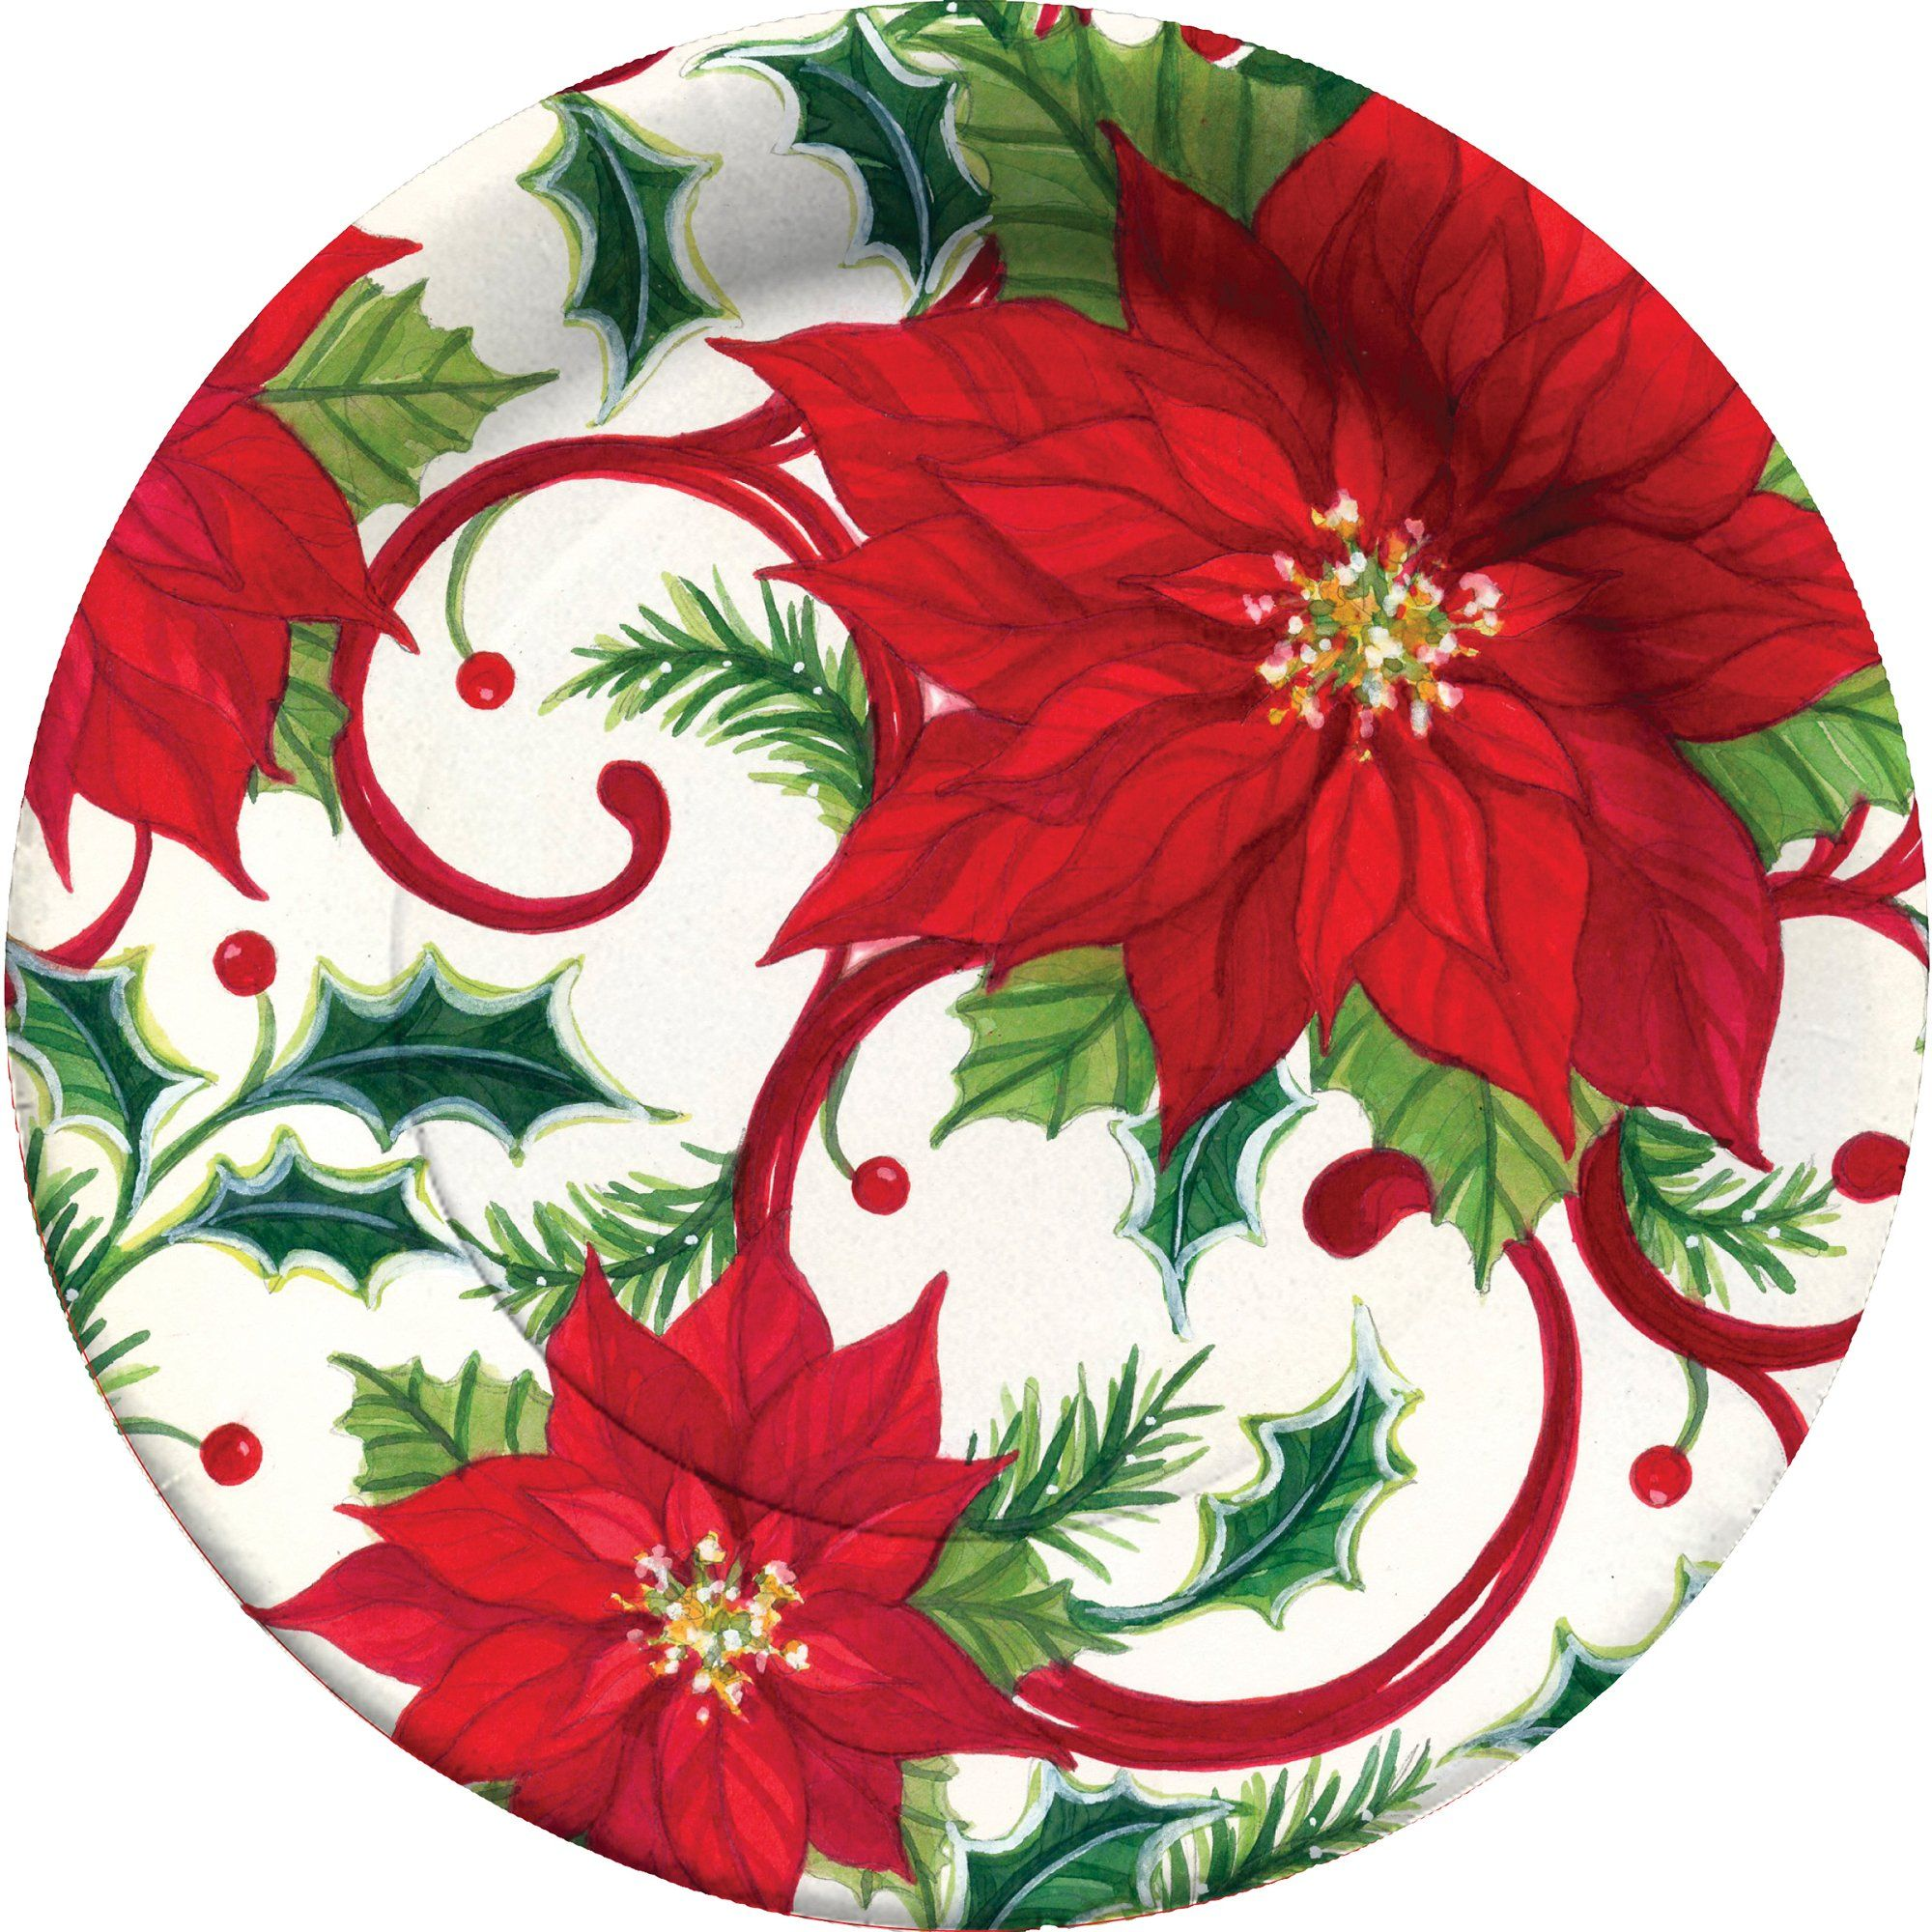 B-E-A-UTIFUL holiday paper plates by c.r gibson perfect for your holiday parties and  sc 1 st  Pinterest & B-E-A-UTIFUL holiday paper plates by c.r gibson perfect for your ...